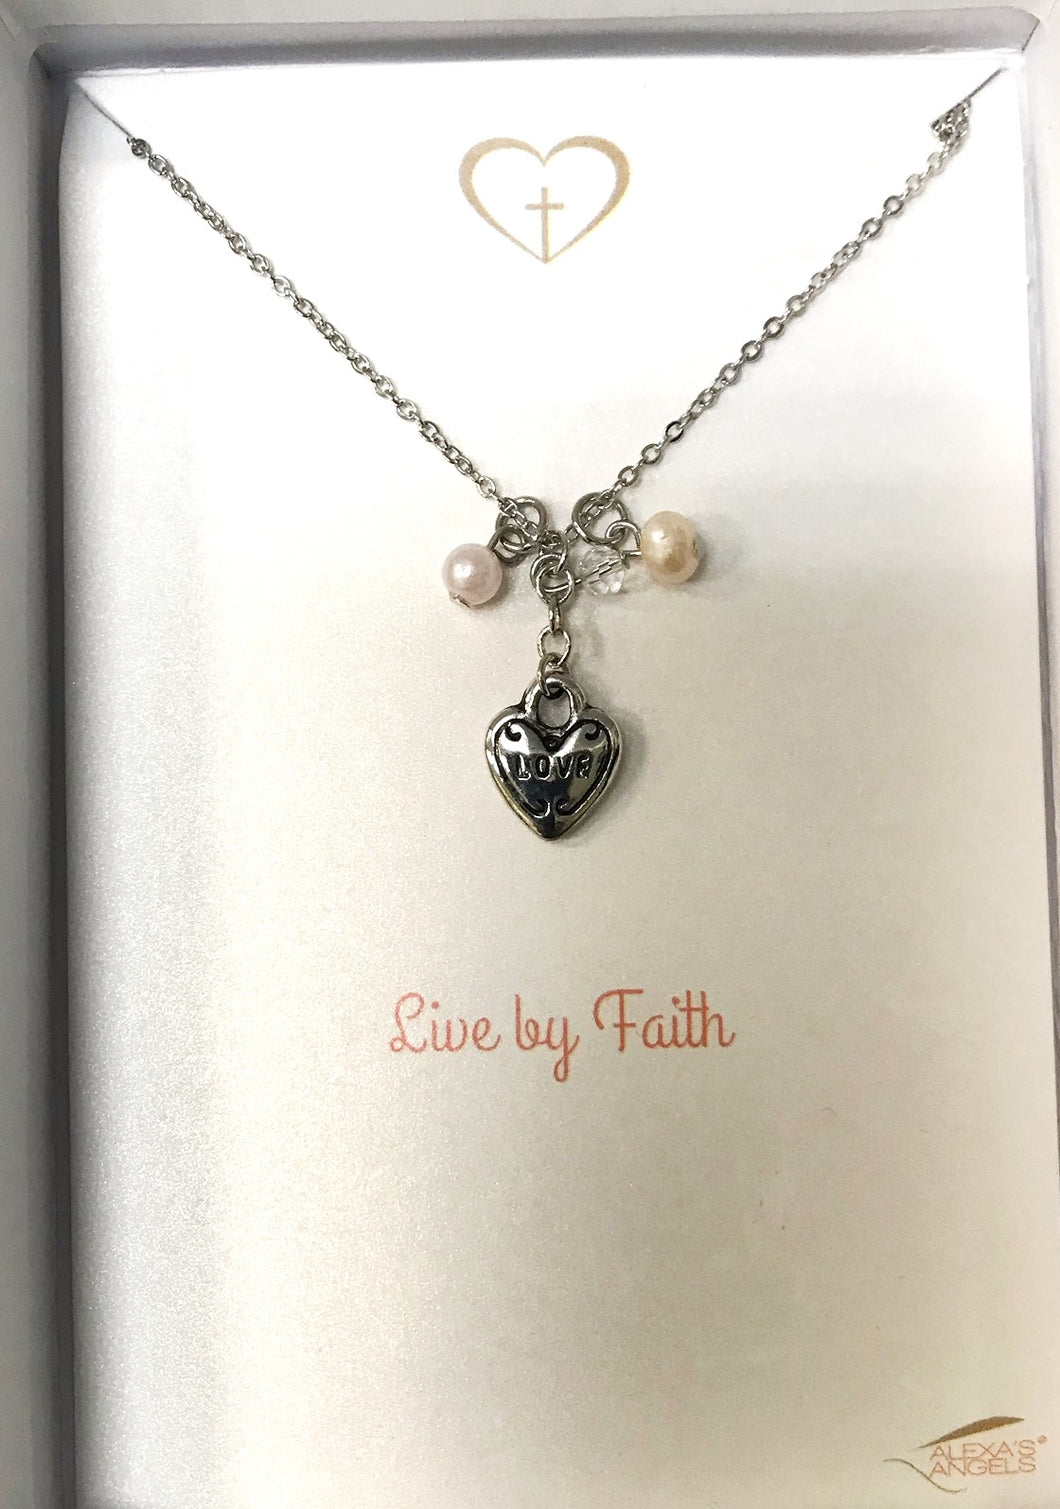 Necklace-Faith Heart with Pearls